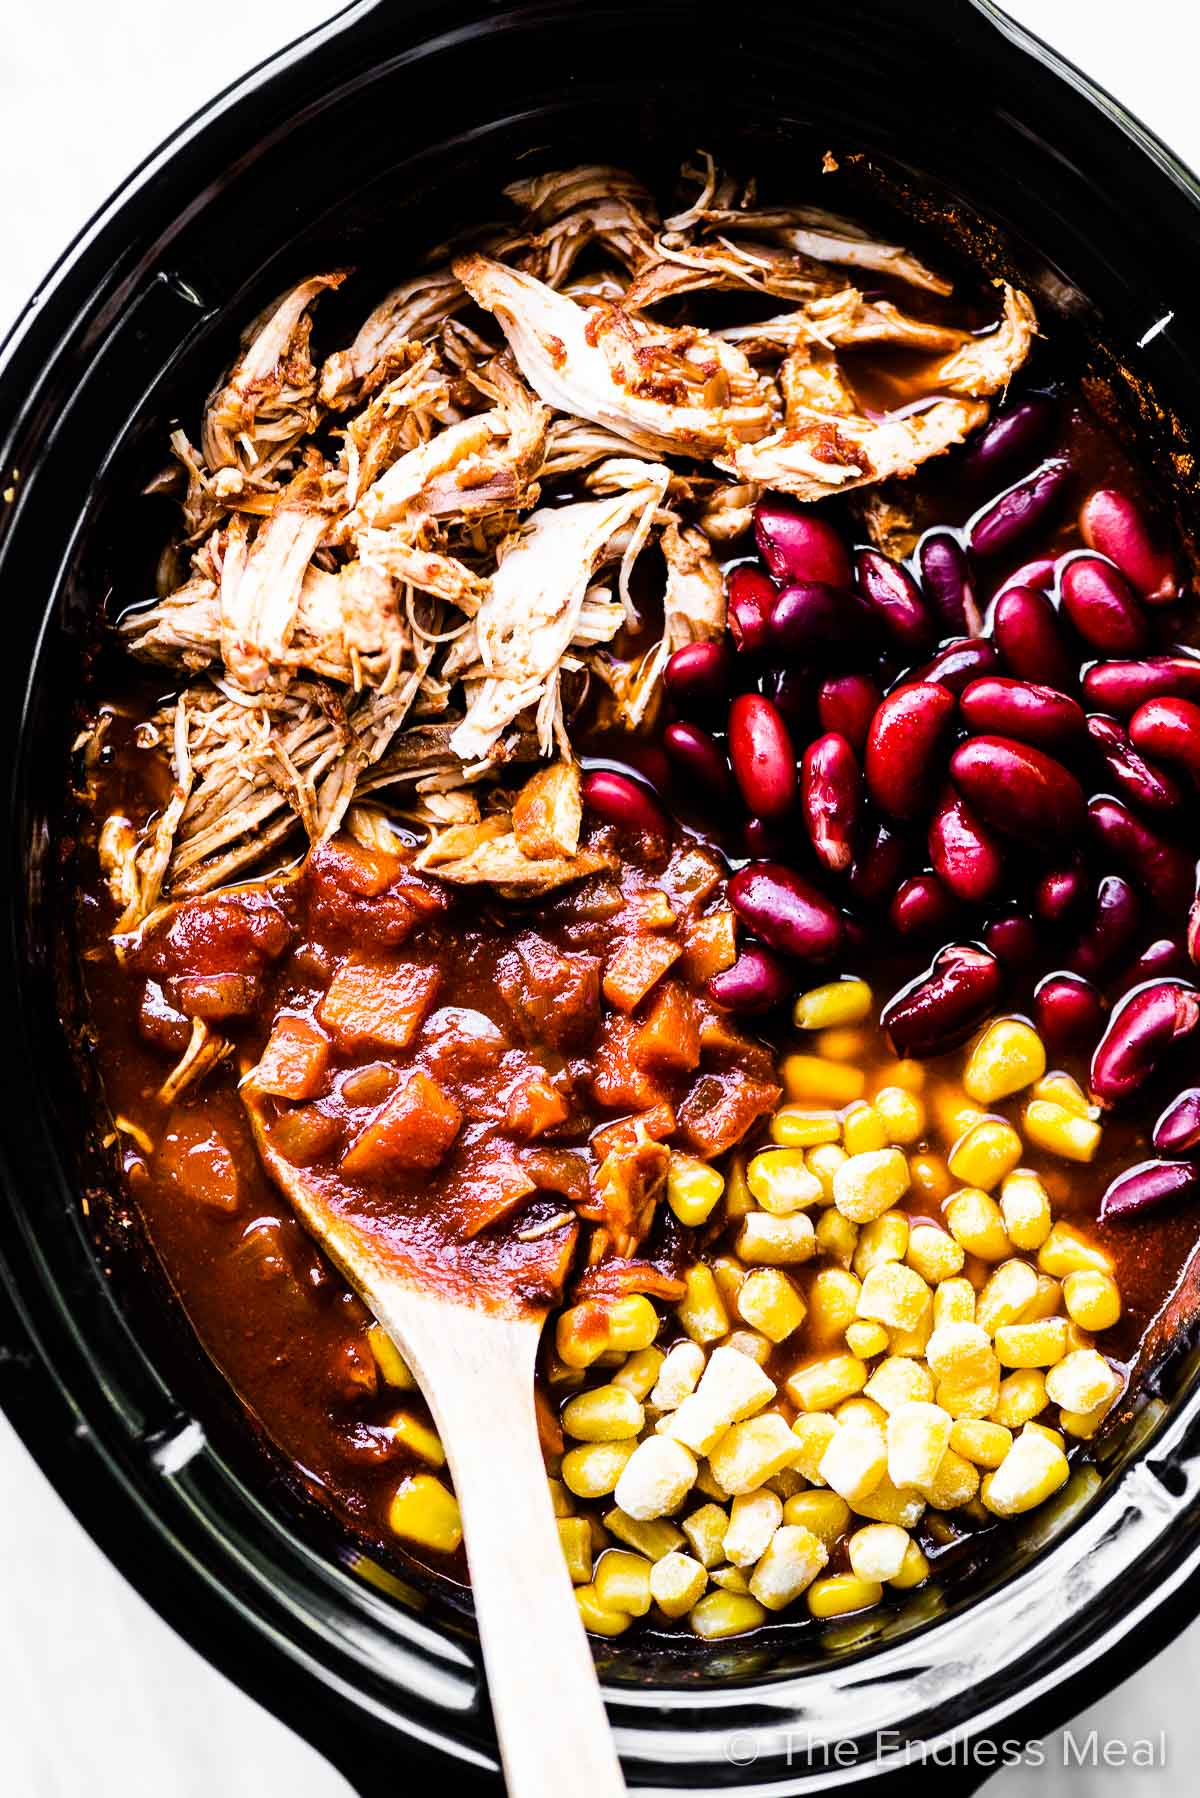 All the ingredients for this chicken chili in a slow cooker.